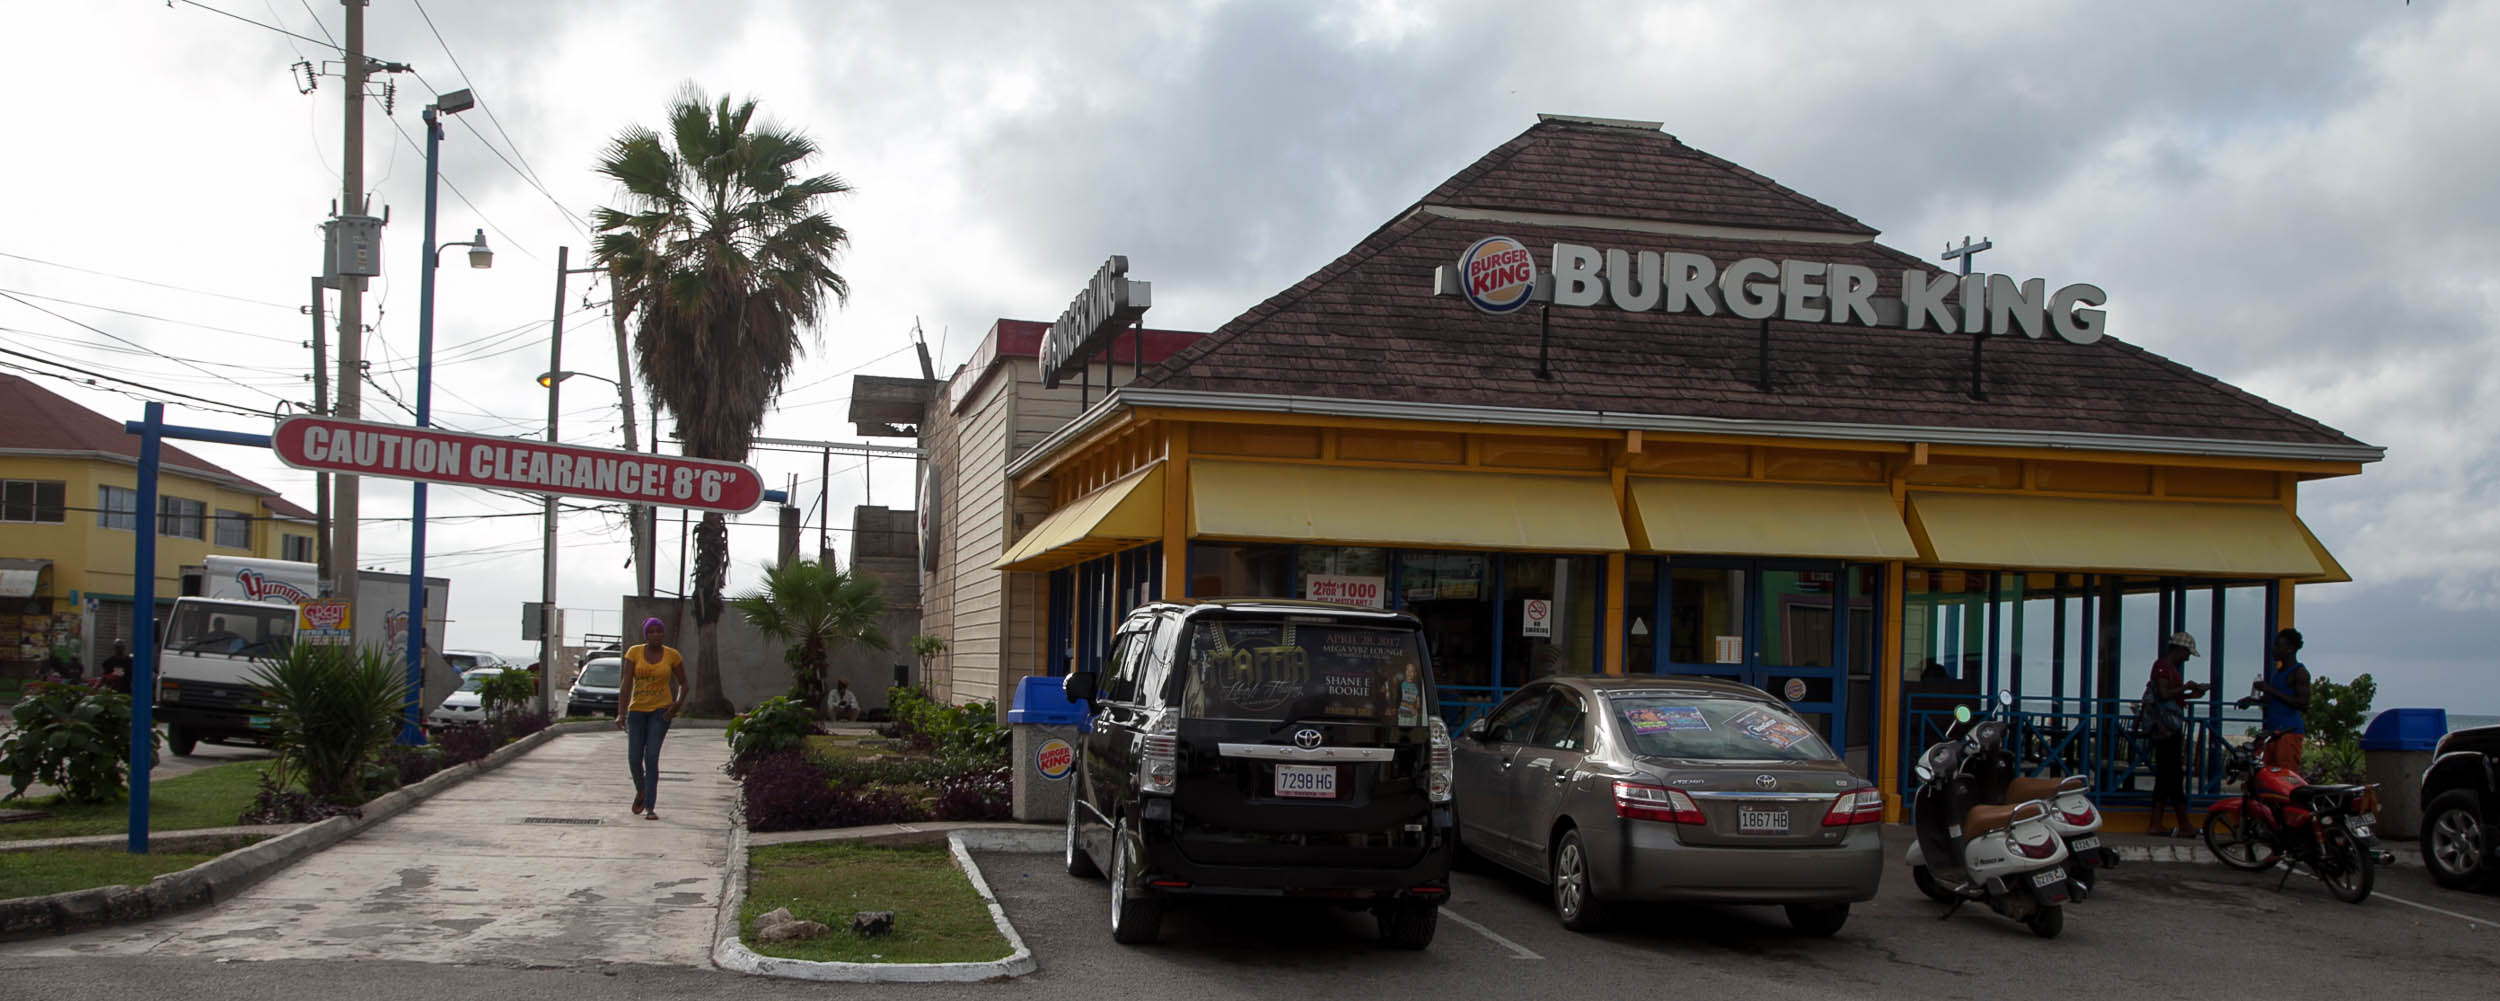 Burger King @ Negril Centre - Negril Jamaica